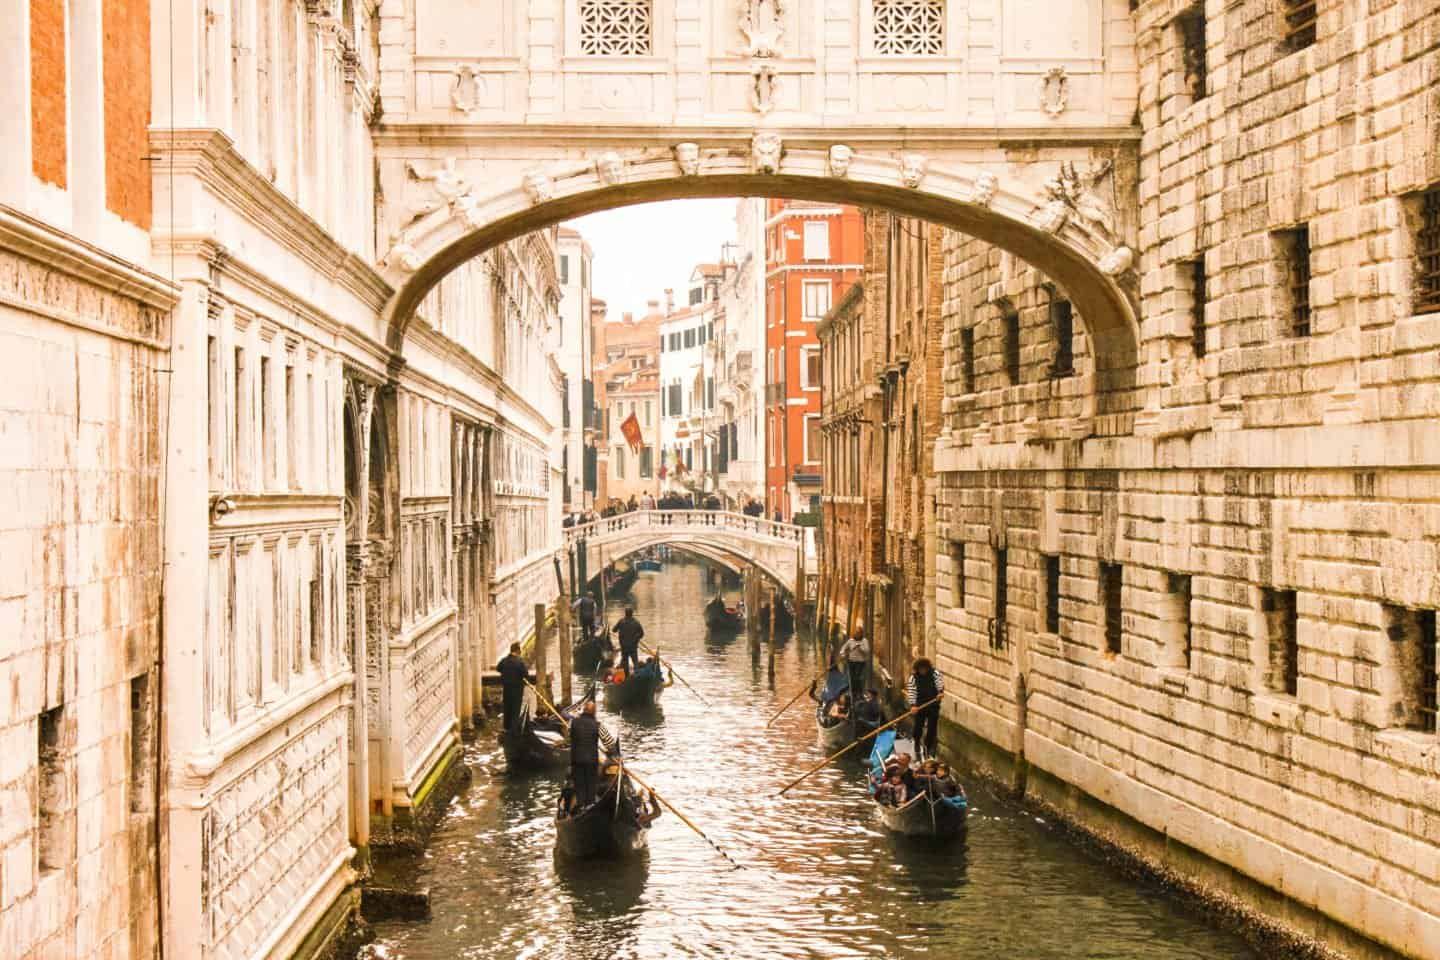 Travelling by gondola along the canals in Venice